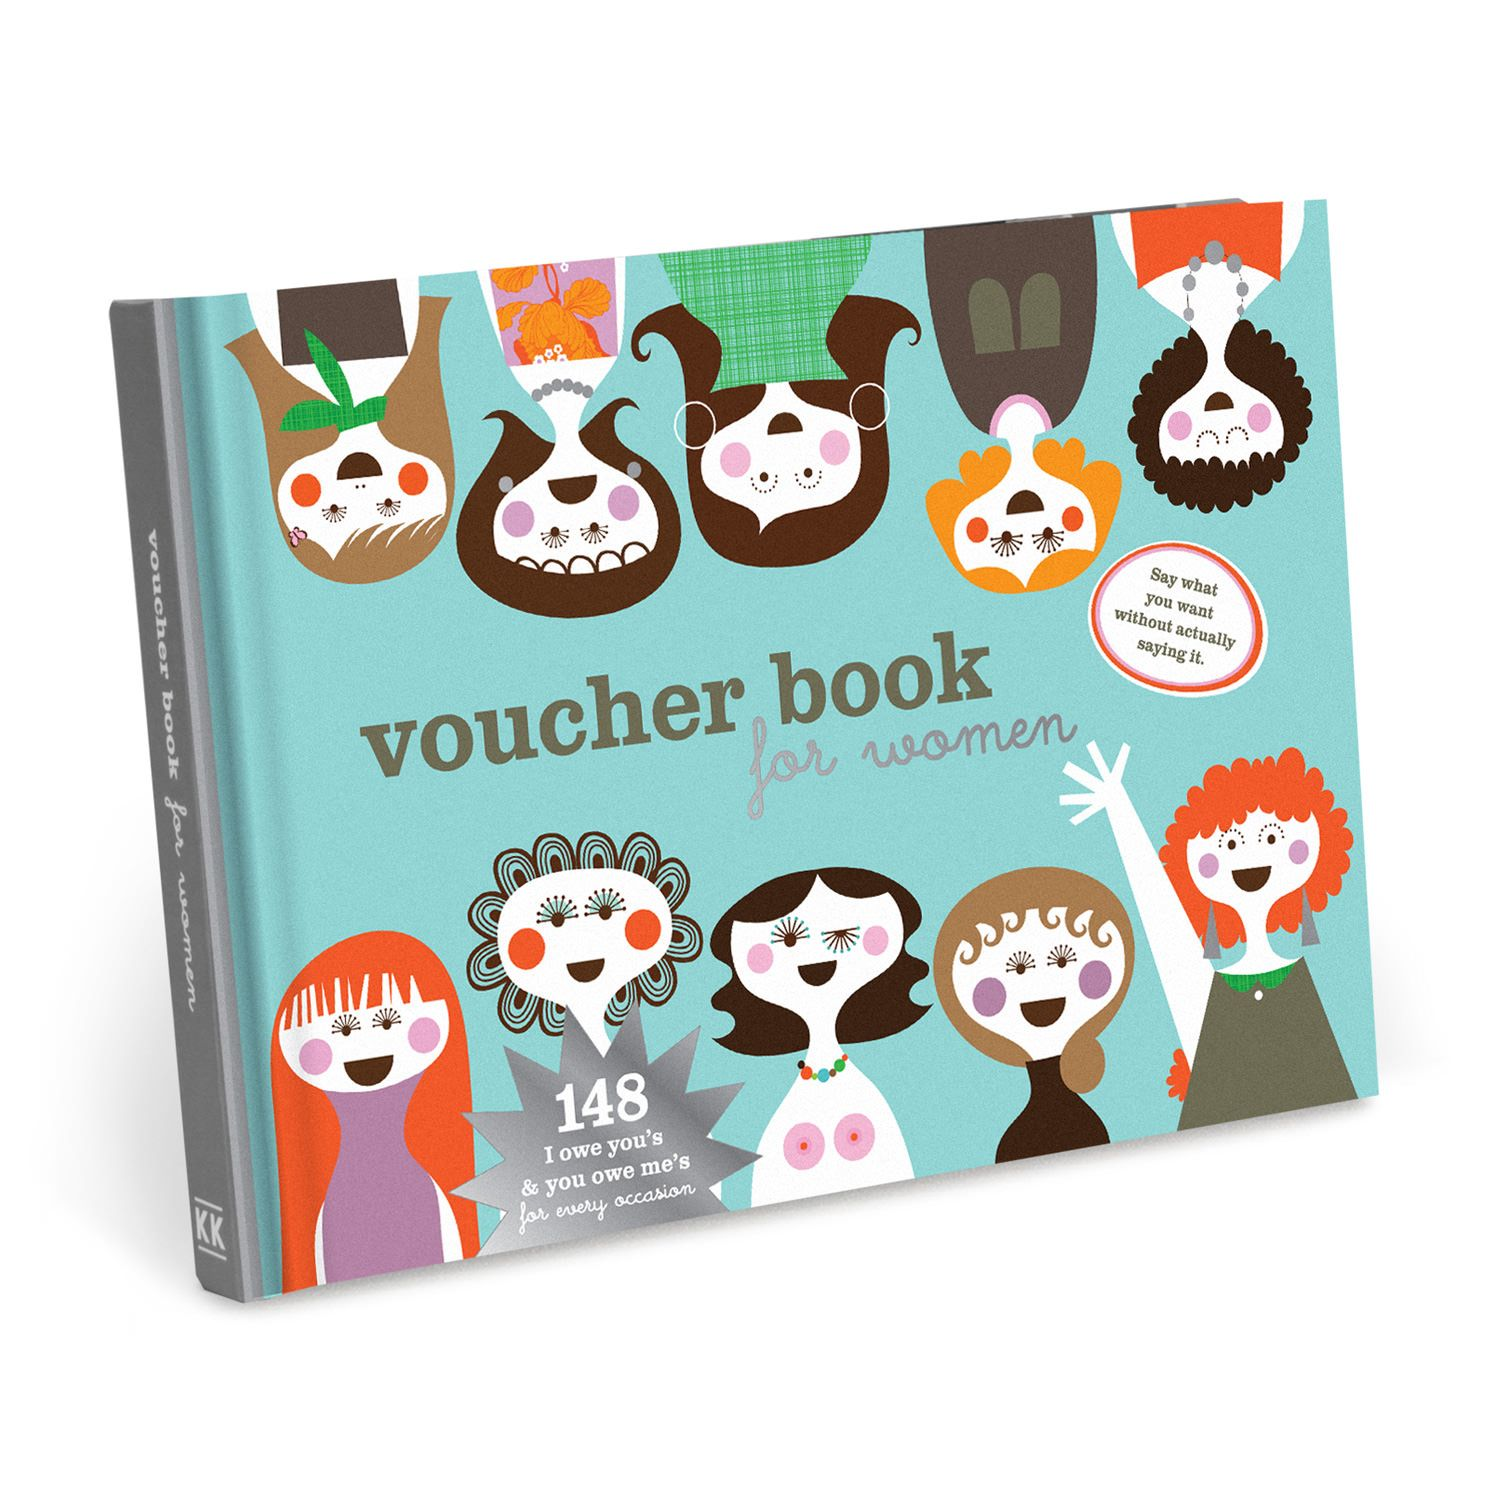 knock knock vouchers for women is a cheeky coupon book of ious and you owe mes for partners friends family good gift for friends